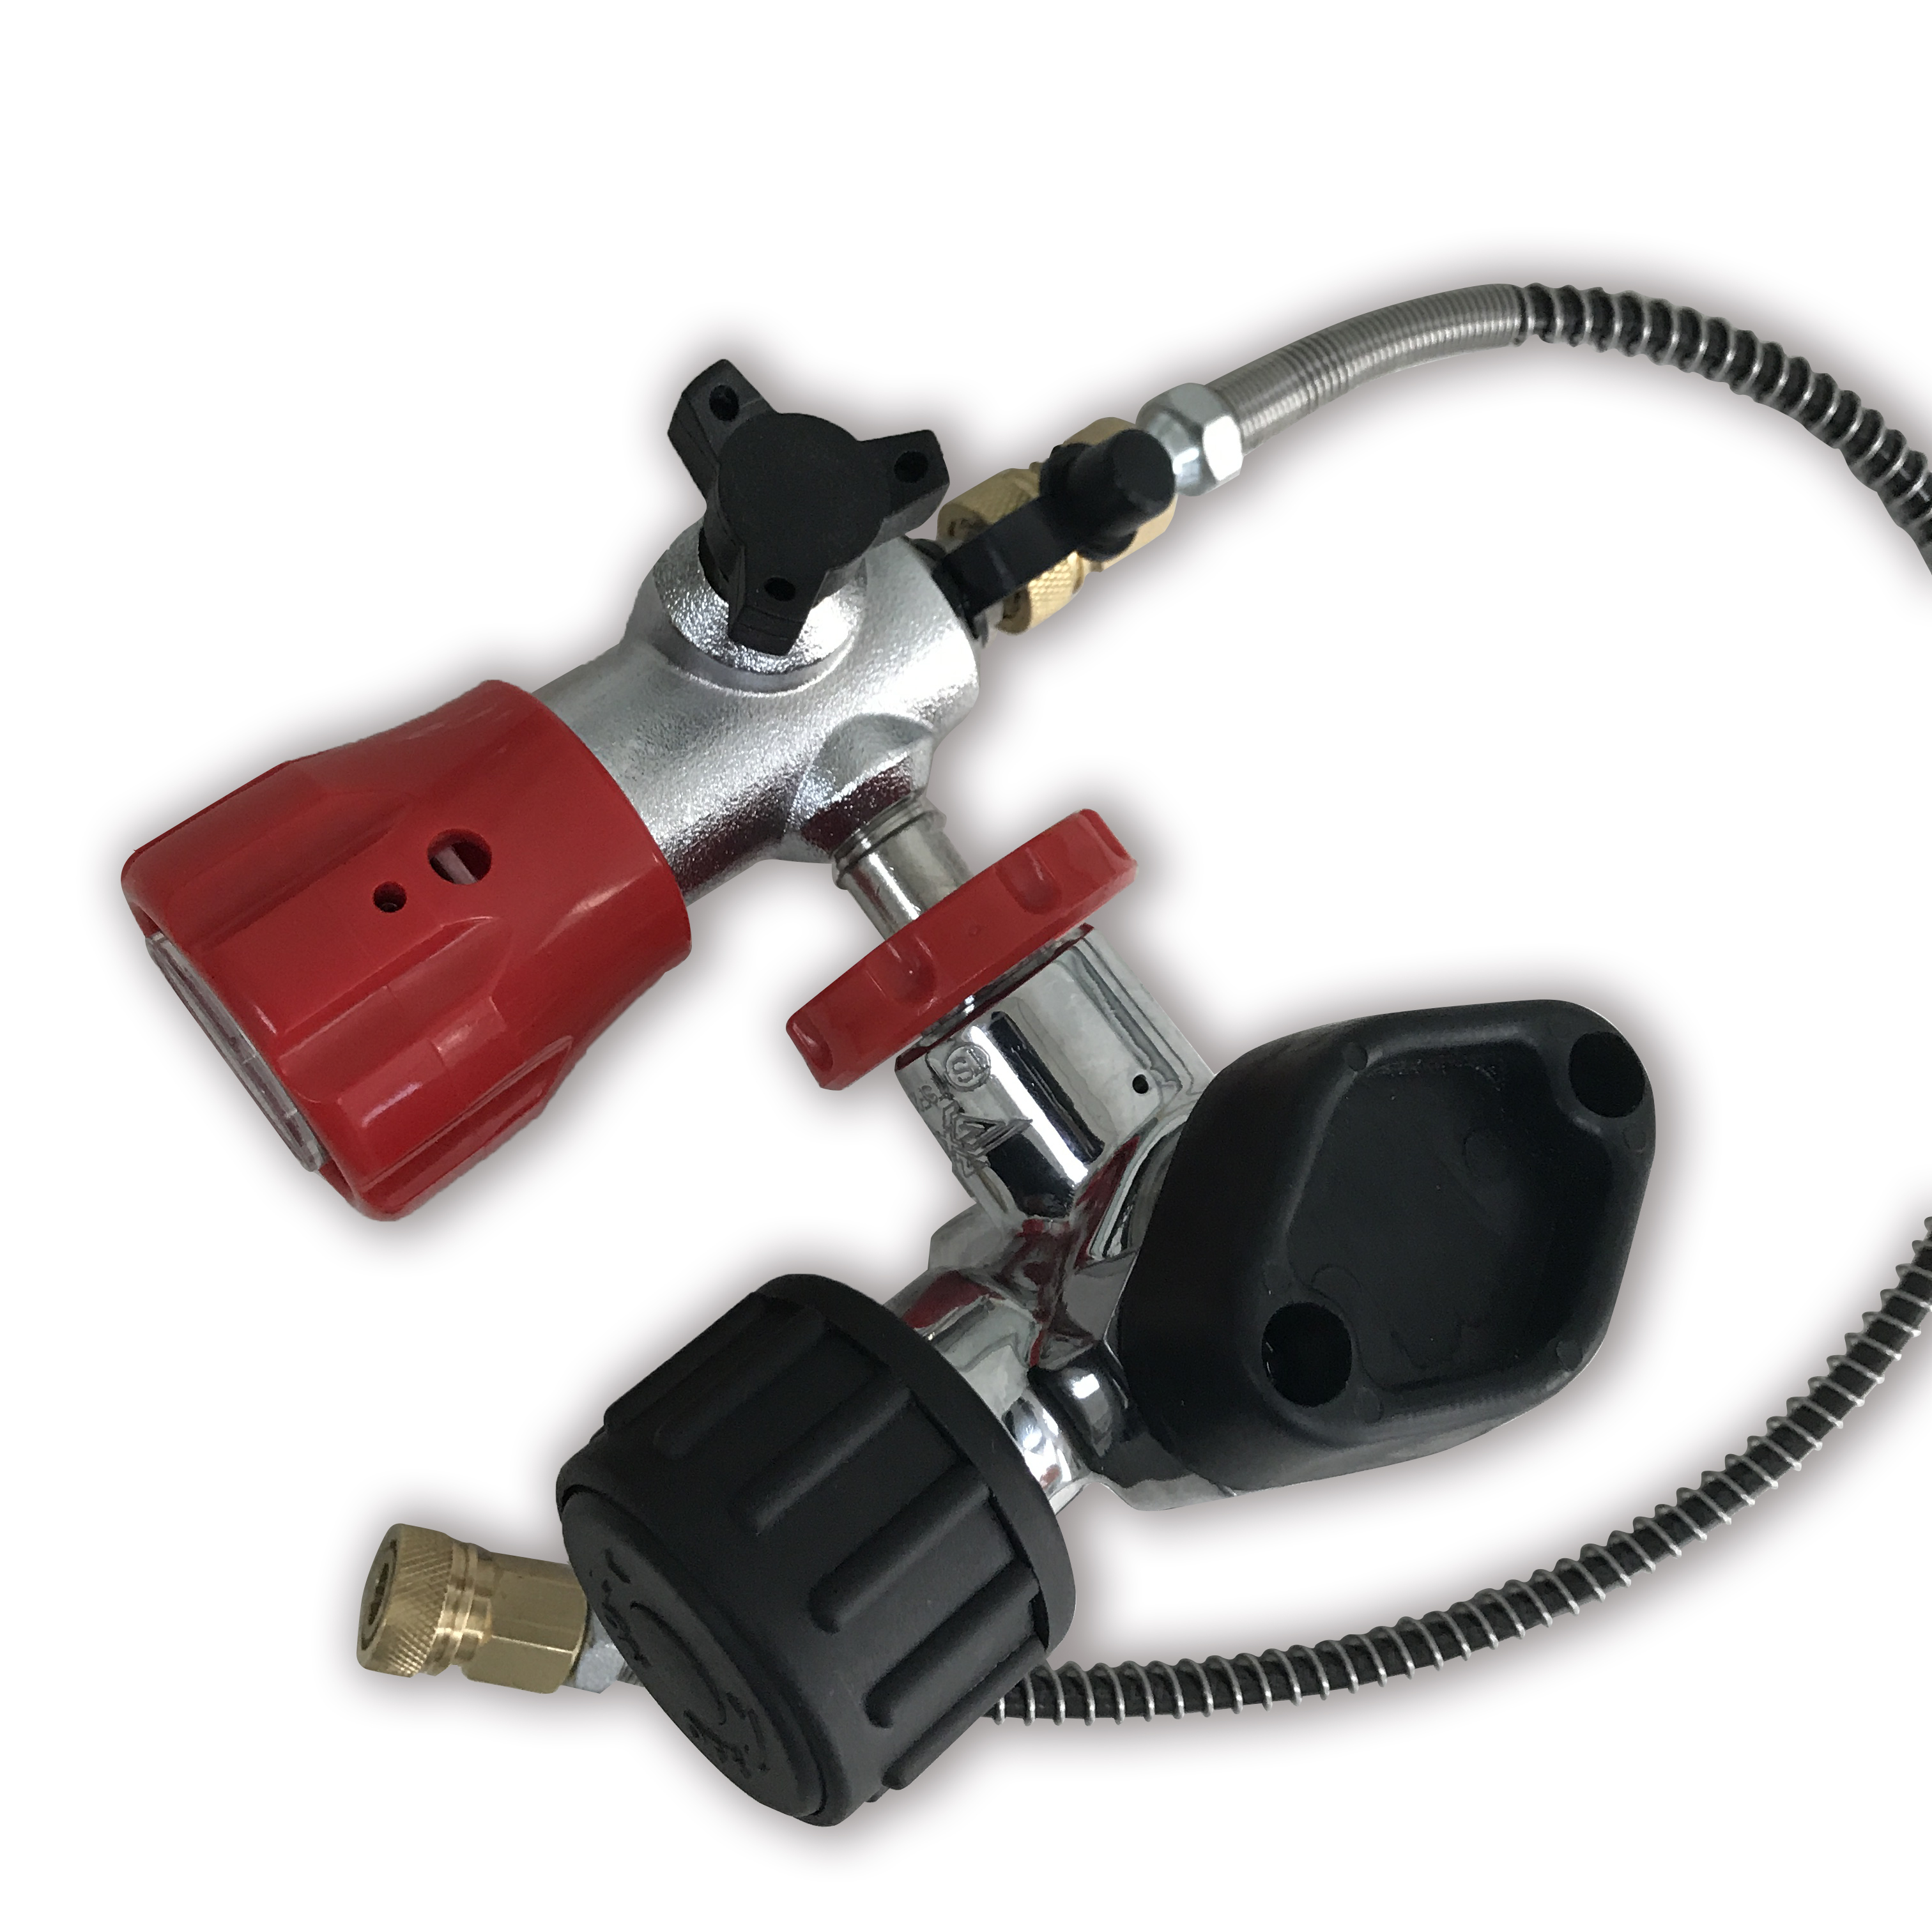 AC201 Pcp Valve&Filling Station Combination For Scuba Diving Tank 300Bar Paintball Tank With Hose For Pcp Air Rifle Acecare